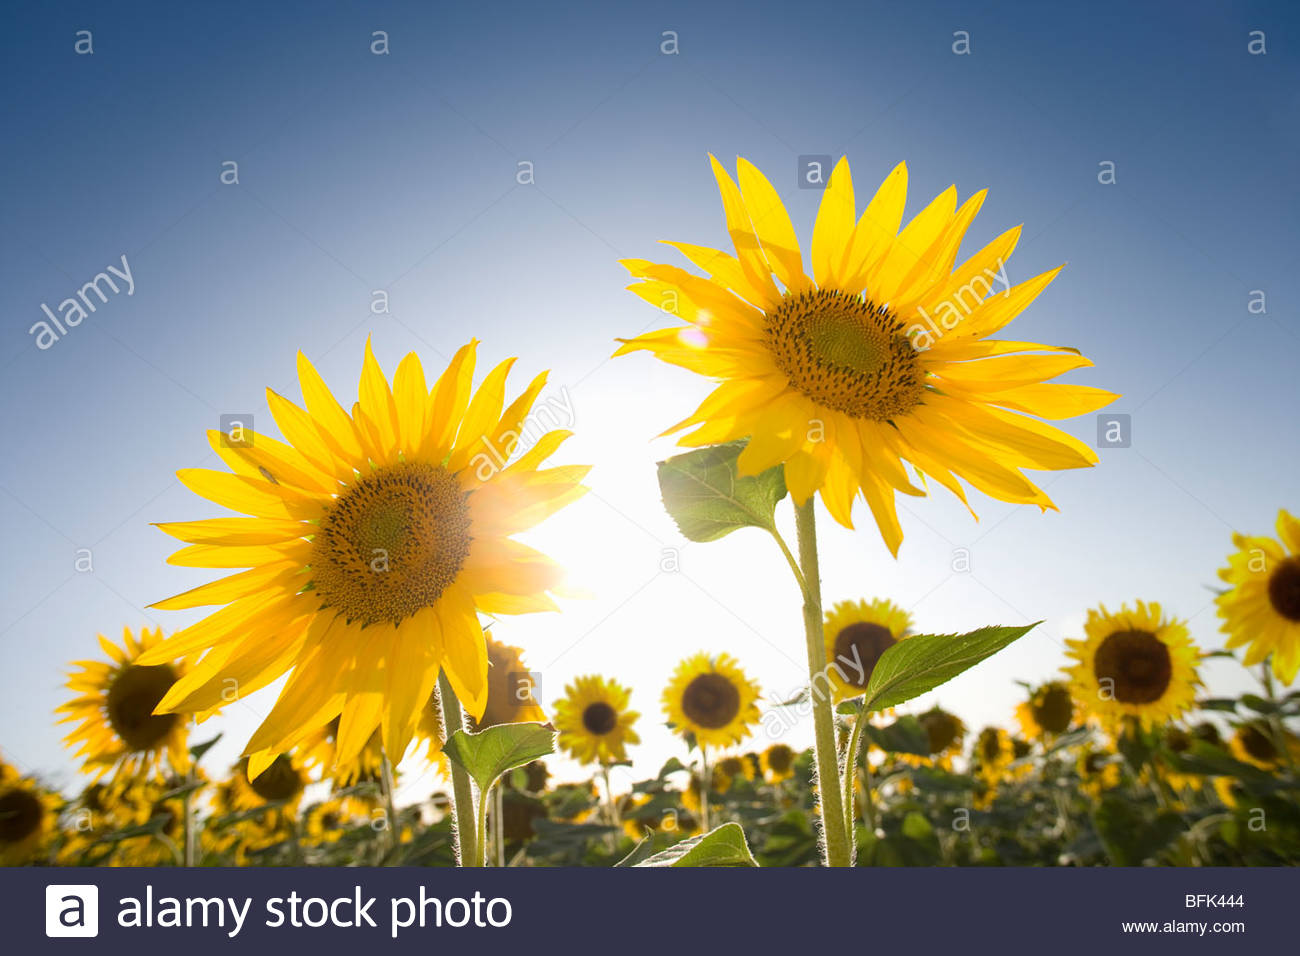 Sun shining in blue sky behind vibrant sunflowers in field - Stock Image